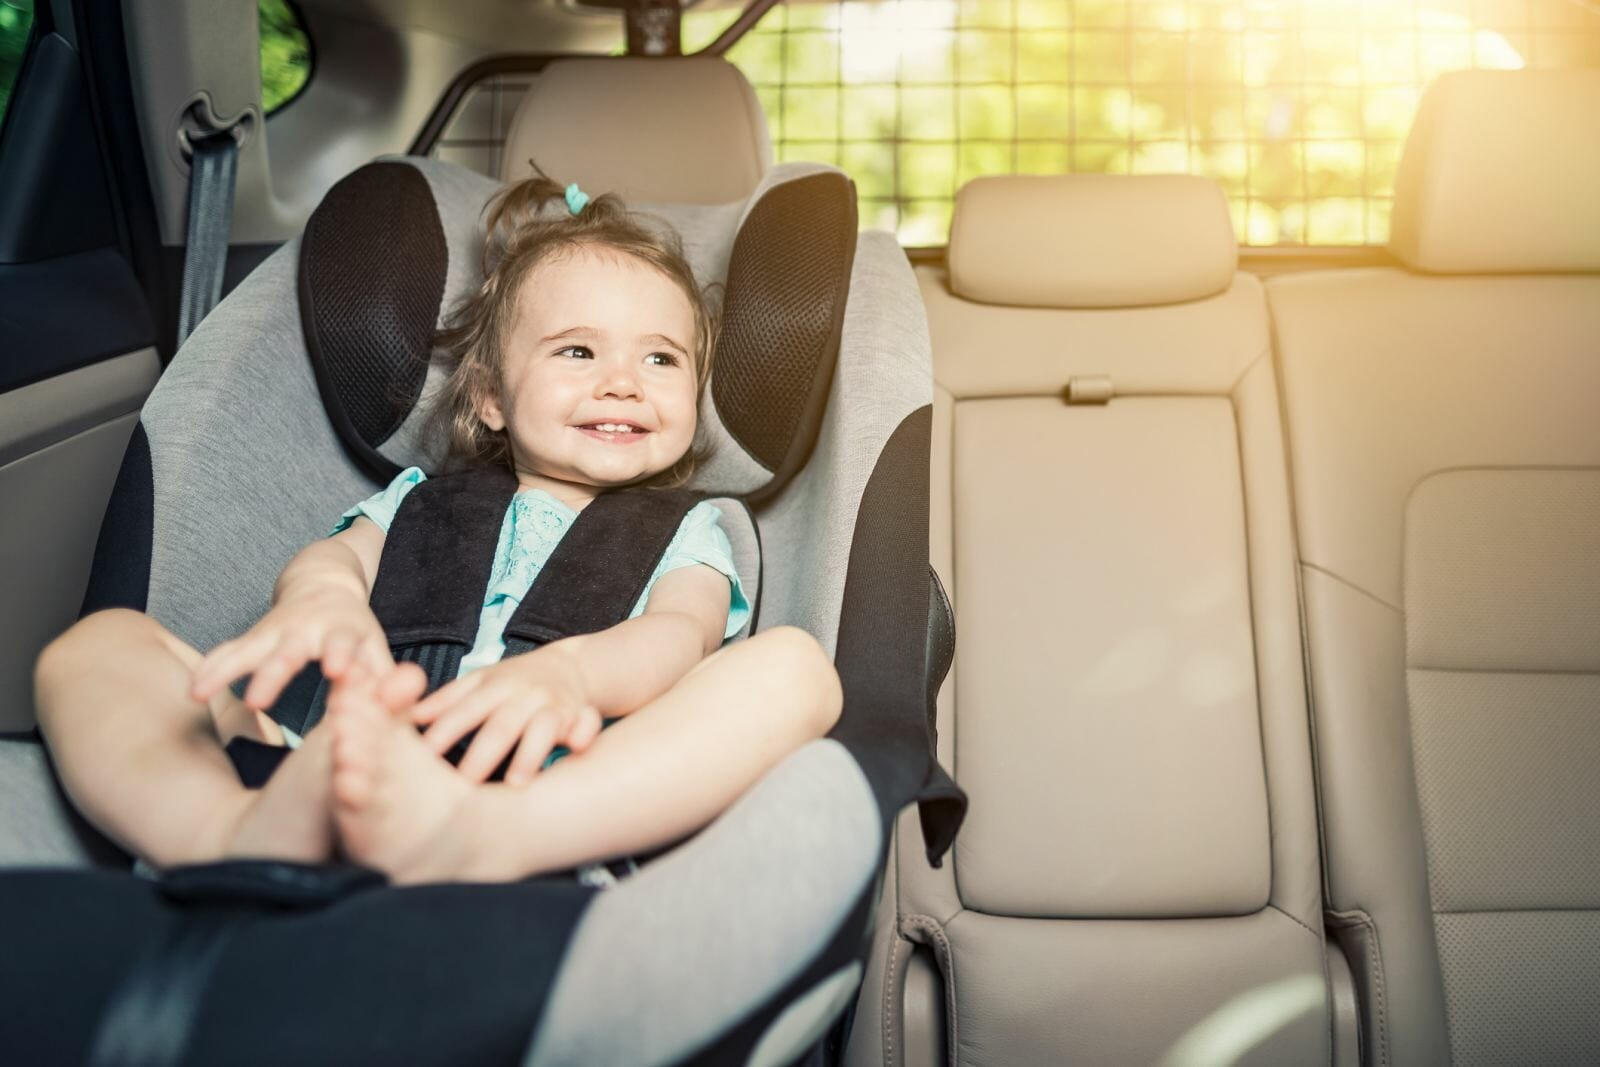 A toddler sits in her car seat